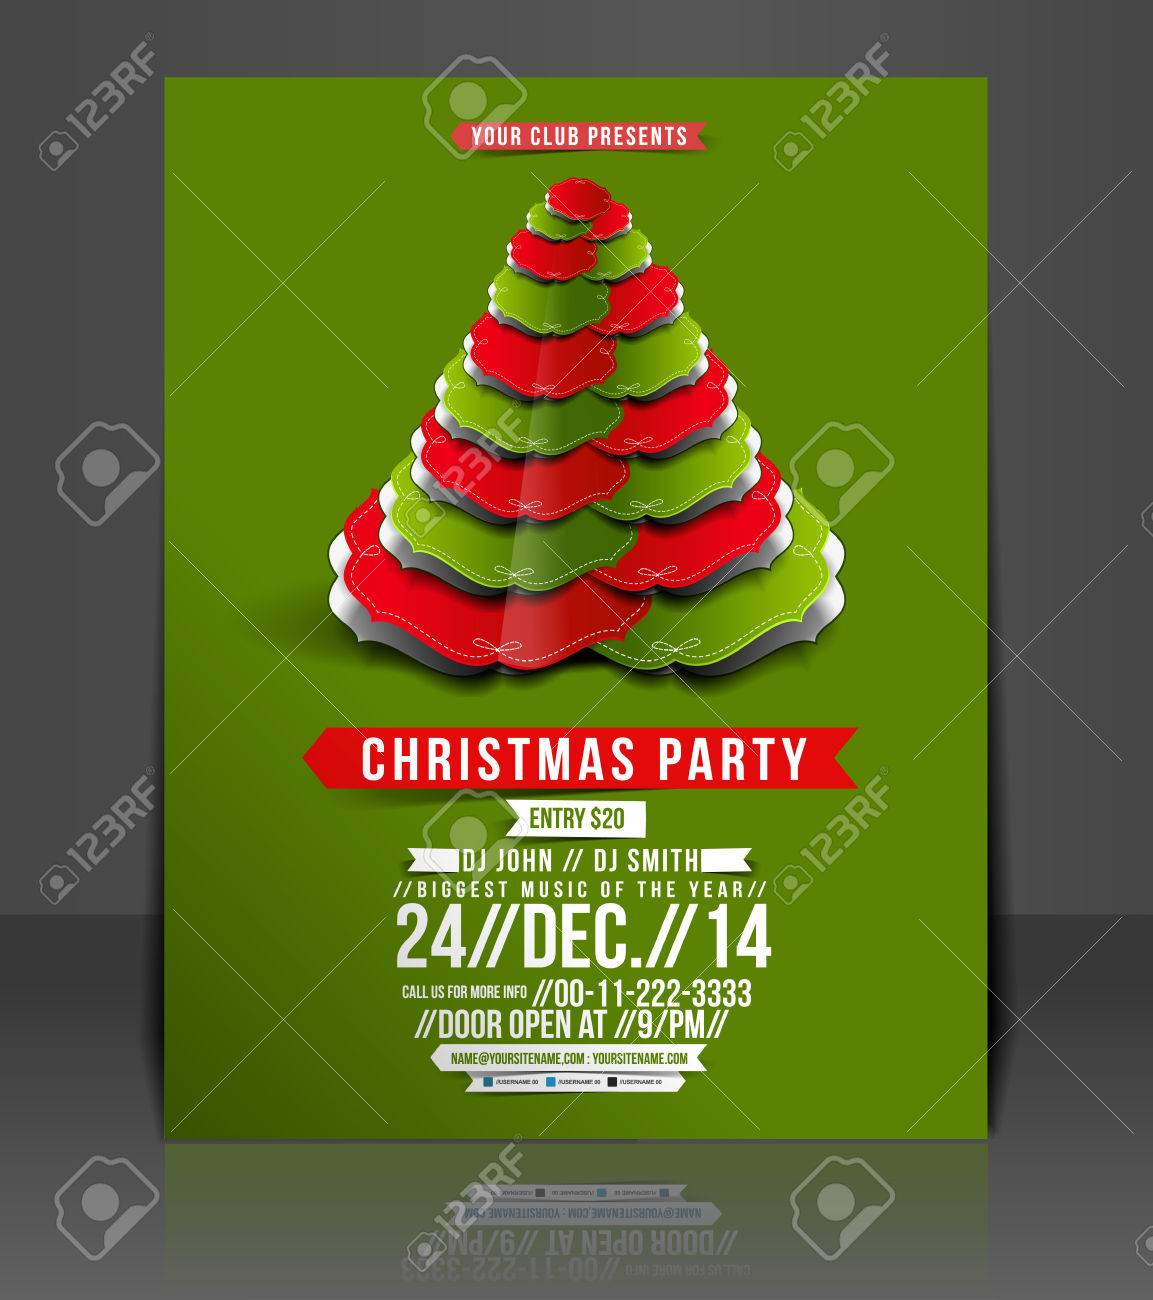 Free christmas poster design templates - Christmas Party Flyer Poster Template Stock Vector 26787697